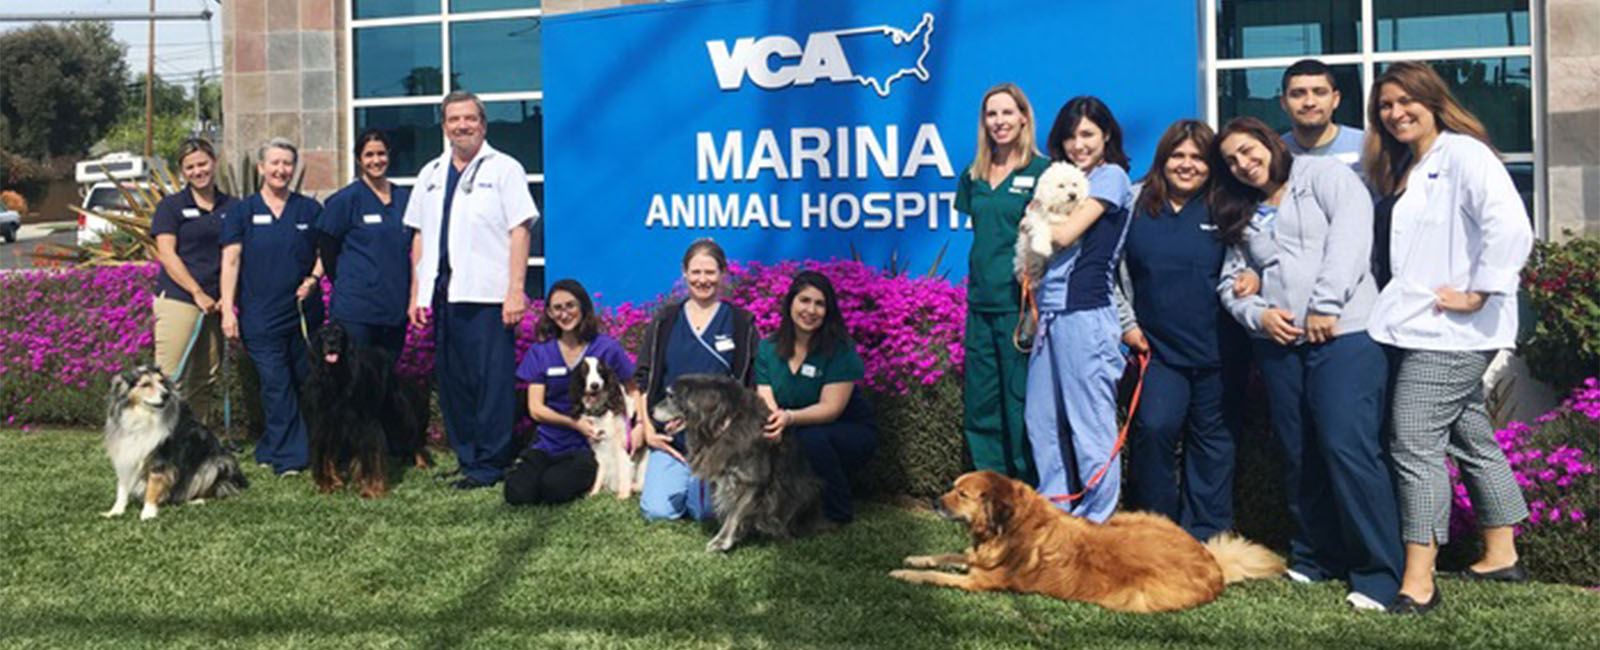 Homepage Team Picture of VCA Marina Animal Hospital